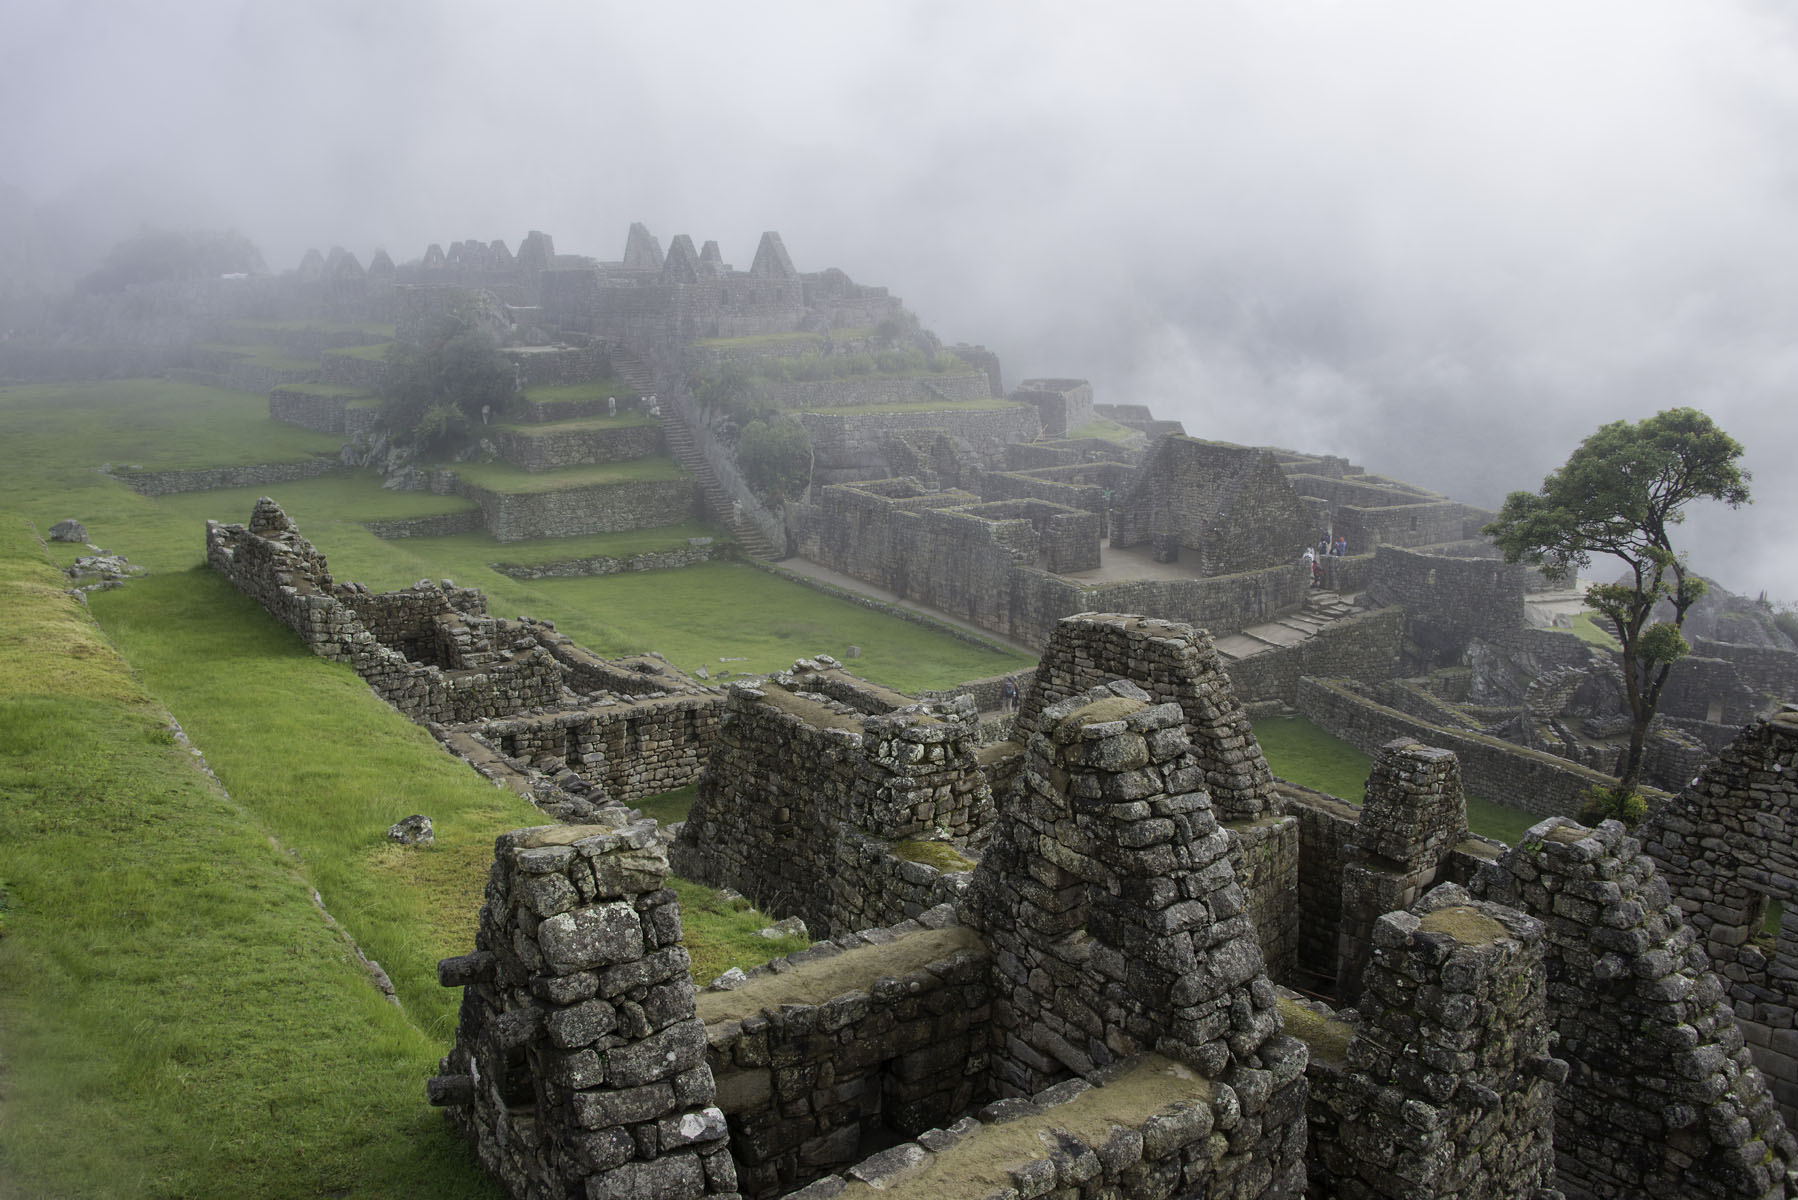 Overview of Machu Picchu City in Fog